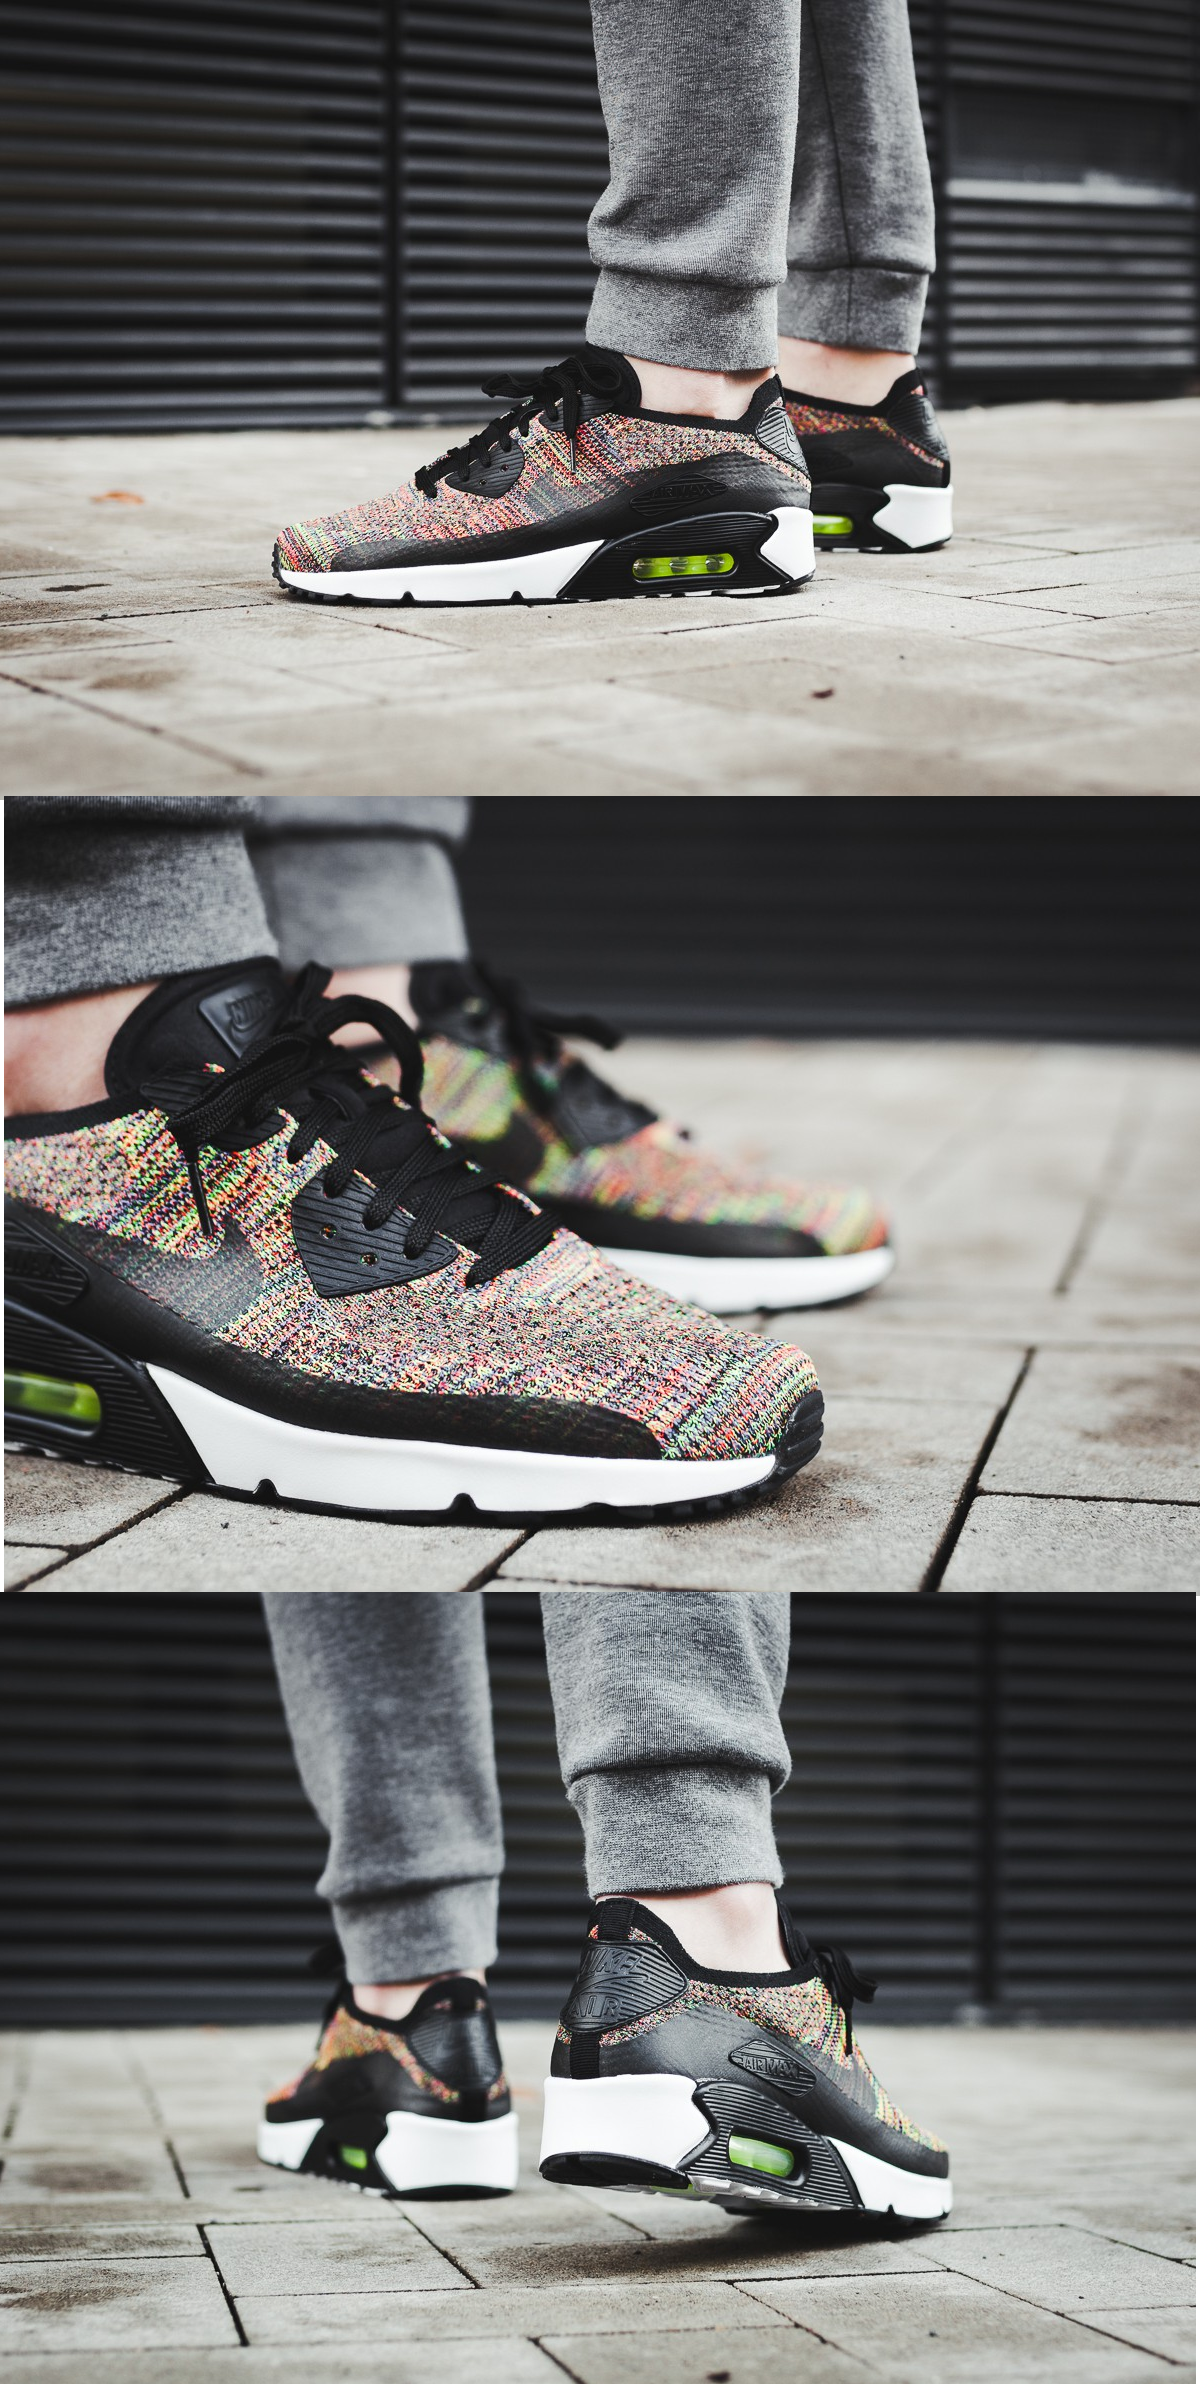 "Nike Air Max 90 Ultra 2.0 Flyknit ""Multicolor</p>                     </div> 		  <!--bof Product URL --> 										<!--eof Product URL --> 					<!--bof Quantity Discounts table --> 											<!--eof Quantity Discounts table --> 				</div> 				                       			</dd> 						<dt class="